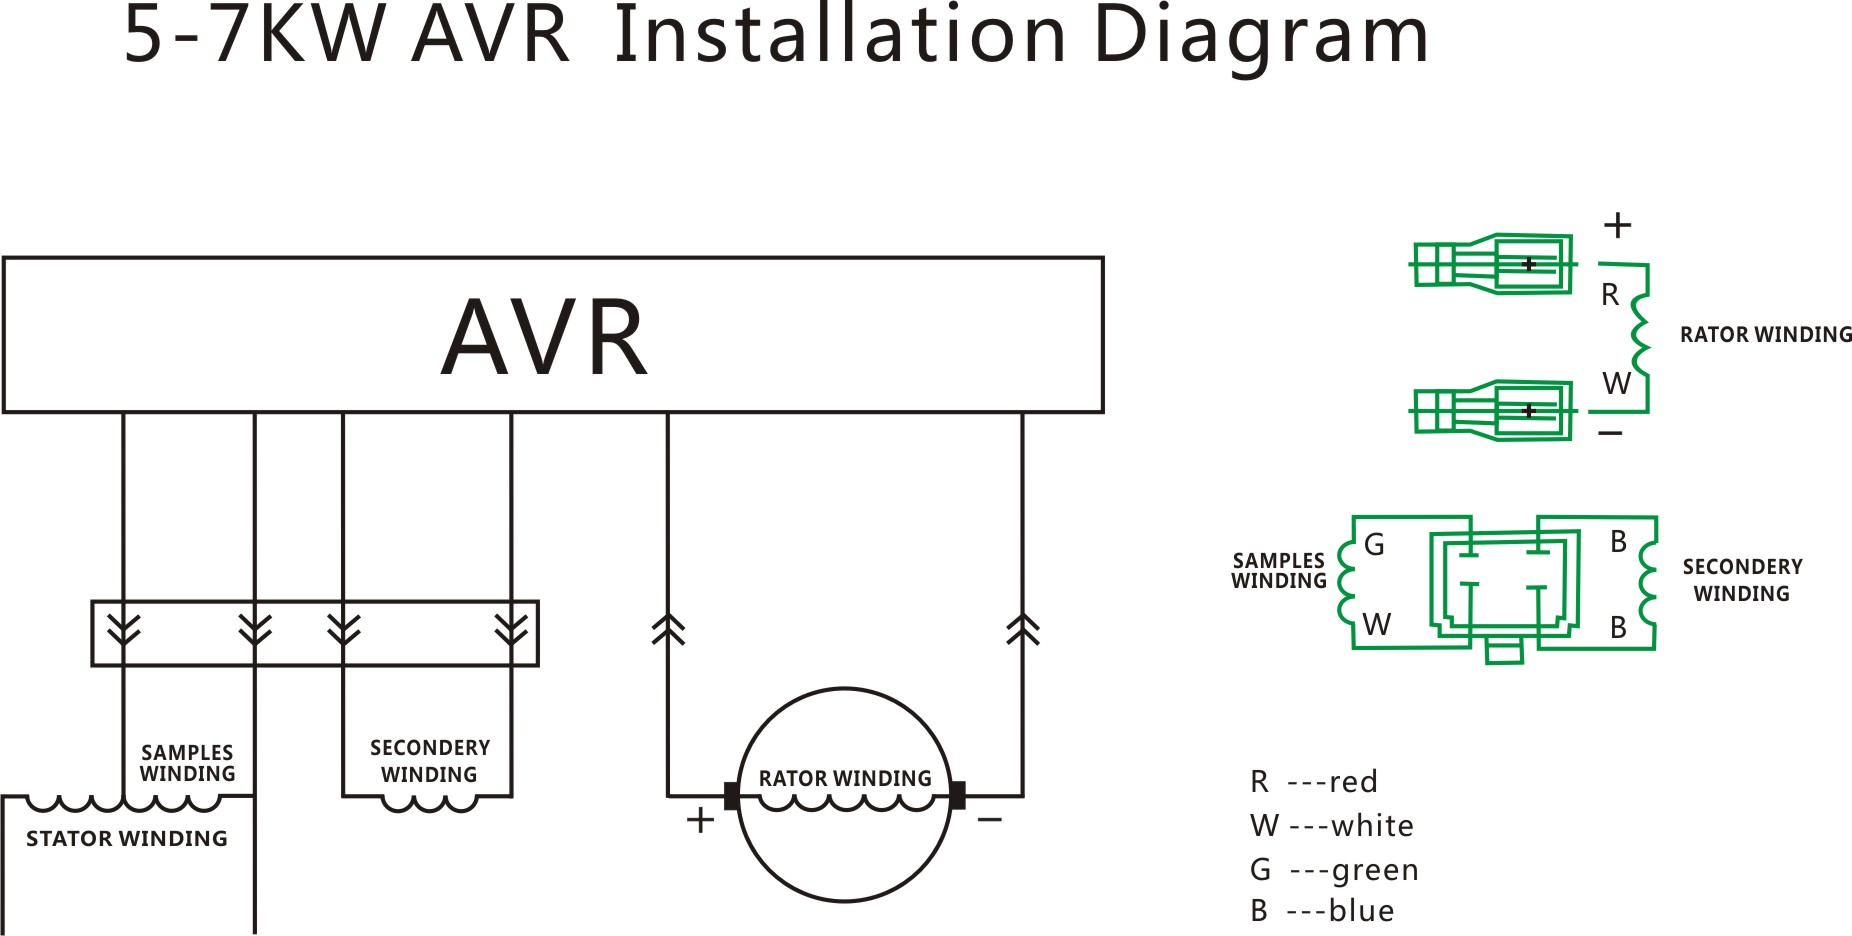 5 7KW AVR install diagram how to replacing portable generator avr? china avr alternator diesel generator avr wiring diagram pdf at gsmportal.co